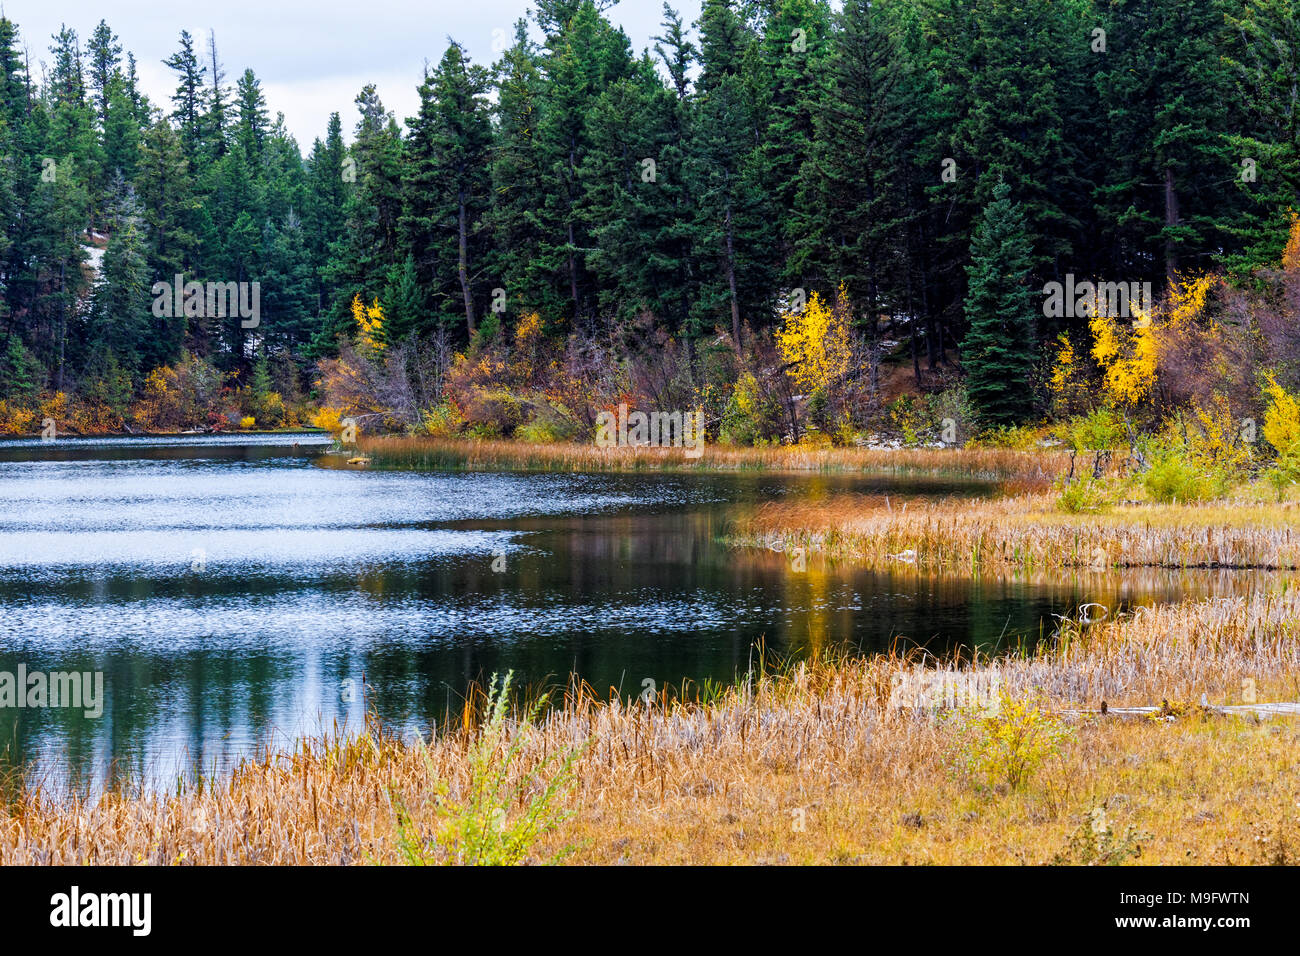 42,653.07344 Lily Lake, small pond marsh conifer forest trees, fall color - Stock Image